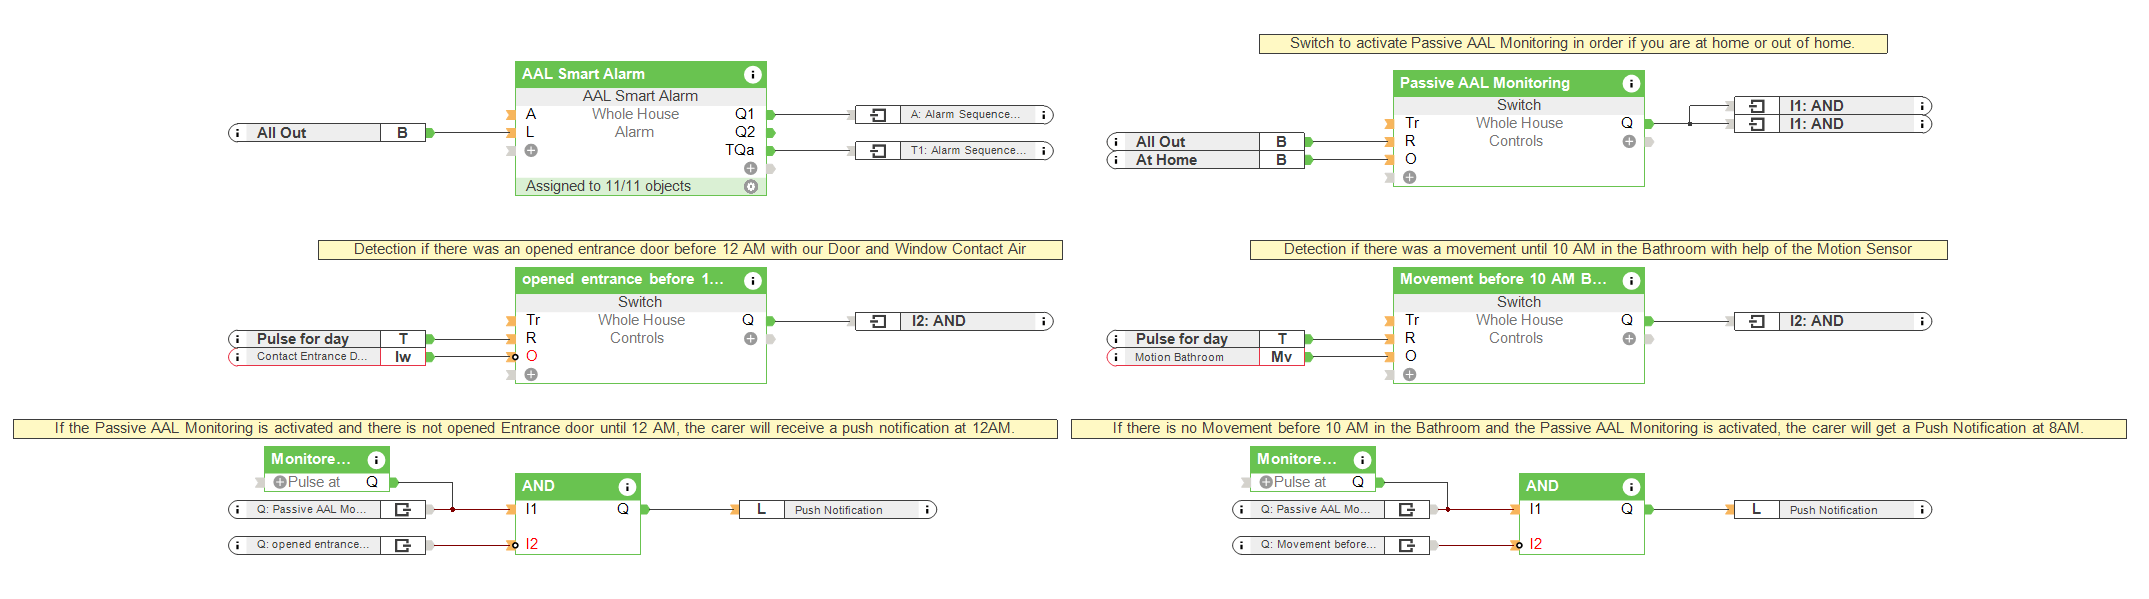 Passive Monitoring for Assisted Living - Loxone config screenshot